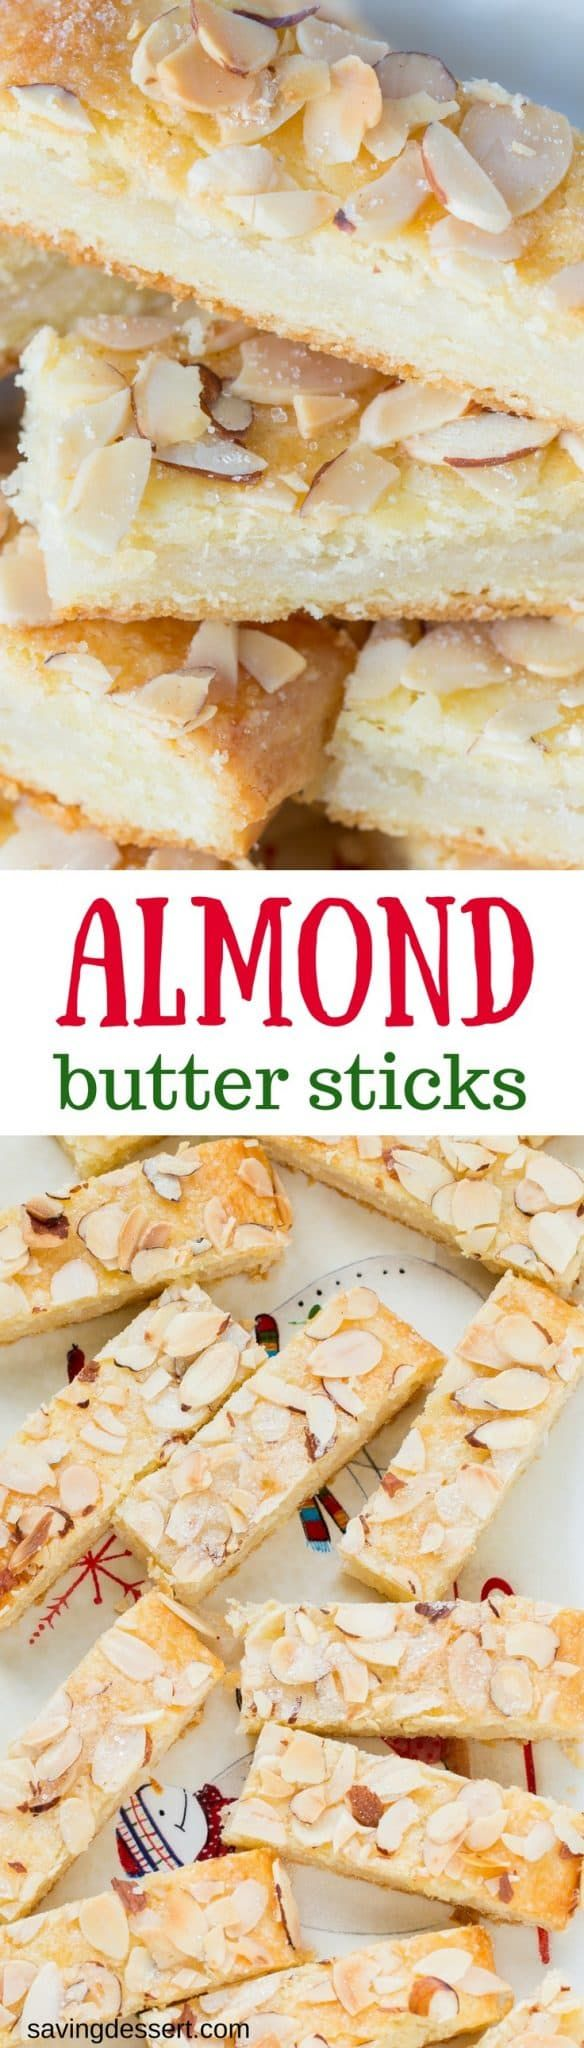 Almond Butter Sticks are a melt-in-your-mouth delicious, tender cookie made with a cream cheese dough andan almondsugar filling.